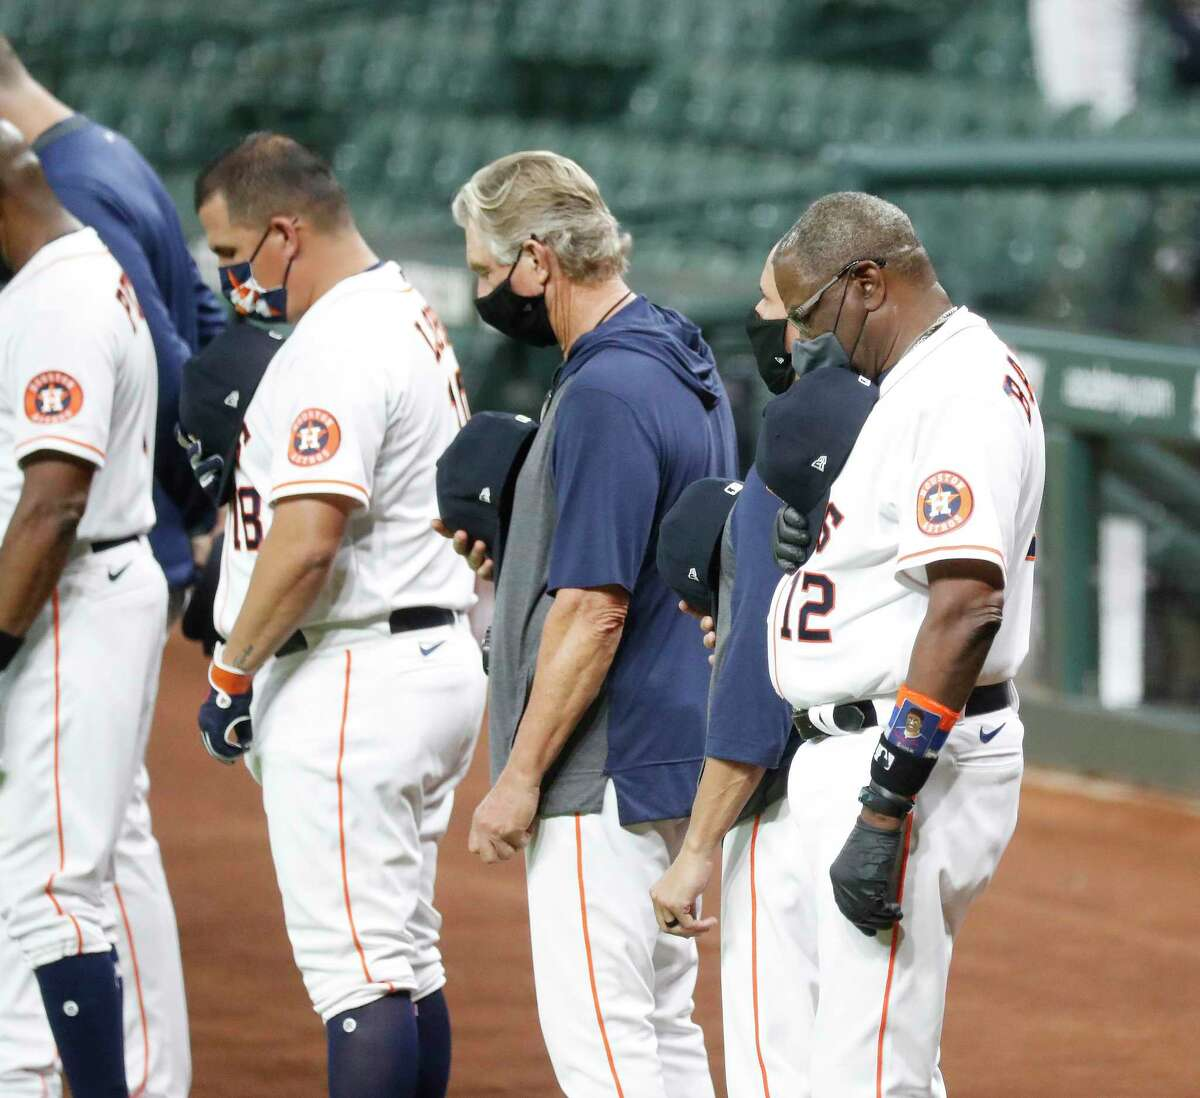 Houston Astros manager Dusty Baker during a moment of silence for Bob Watson and Jimmy Wynn before the start of the first inning of an MLB baseball game at Minute Maid Park, Saturday, July 25, 2020, in Houston.